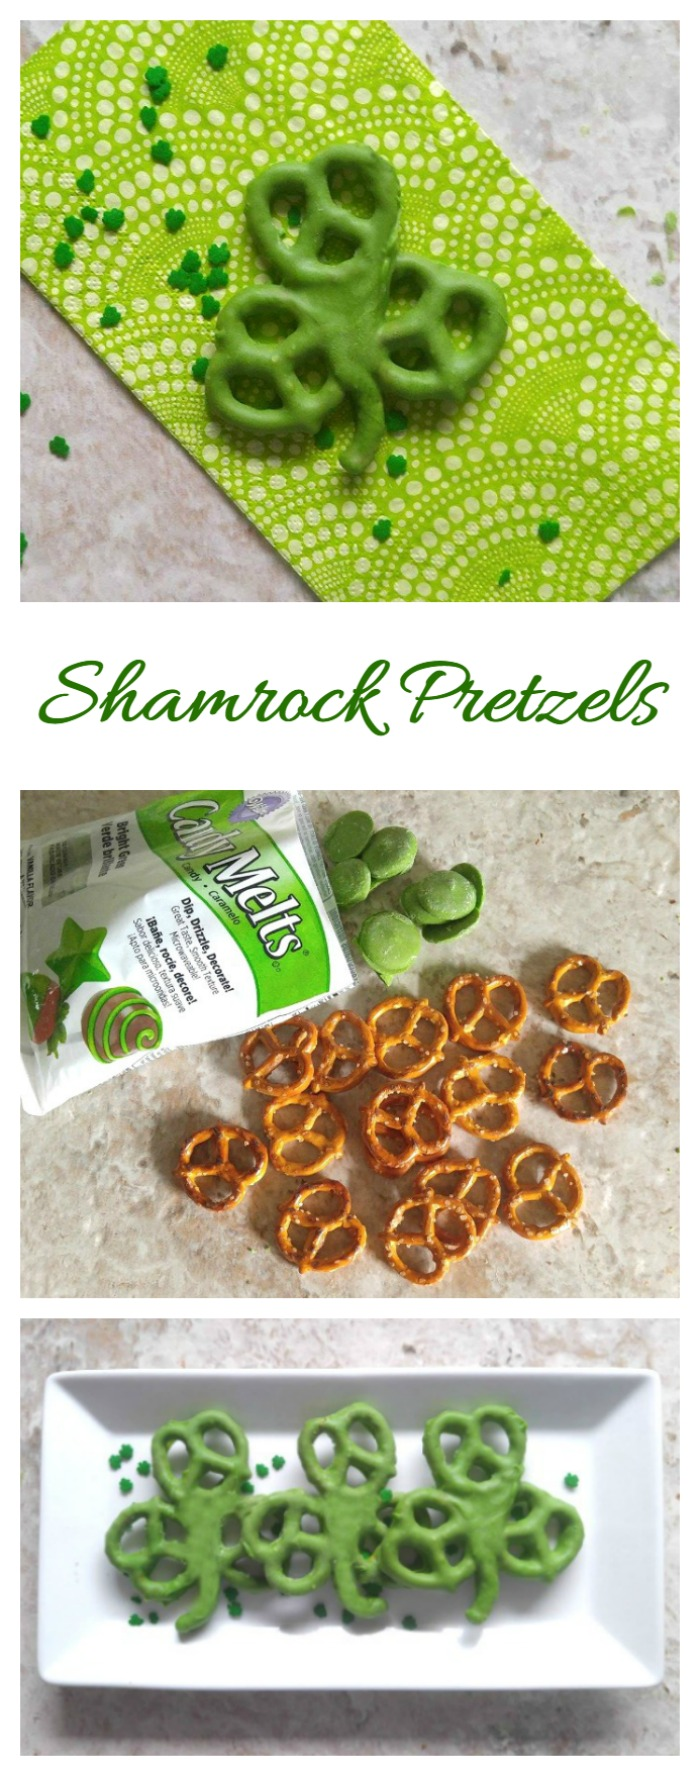 These Shamrock pretzels are a fun sweet and salty treat for St. Patrick's Day. They need only two ingredients!